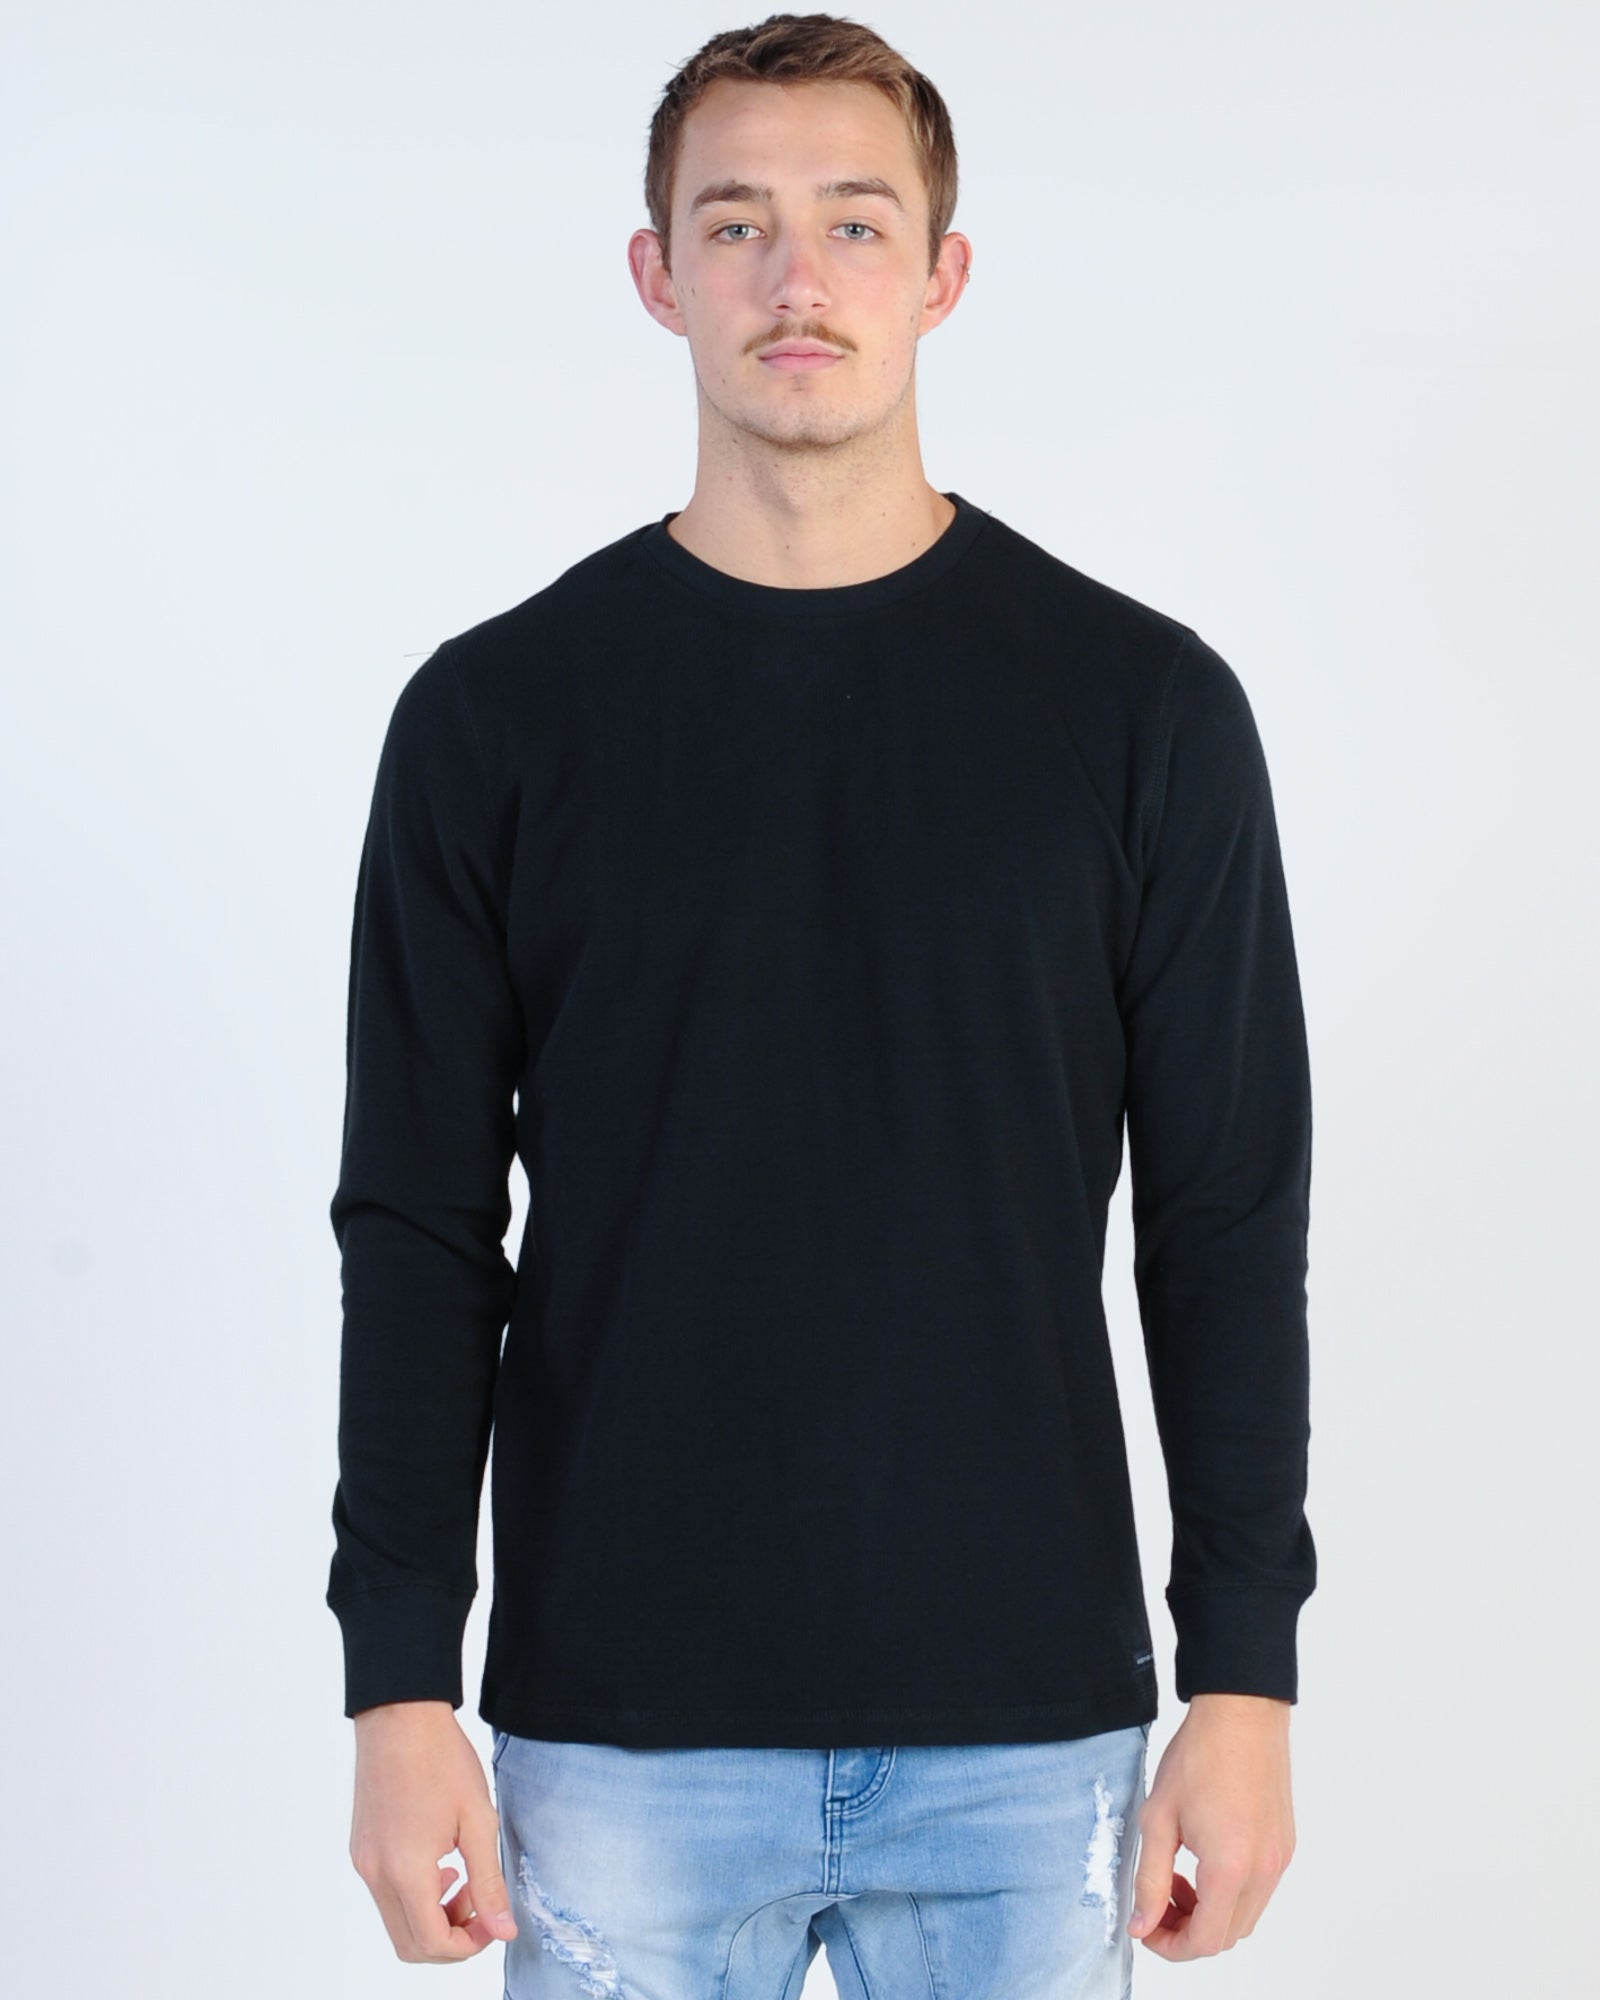 Academy Workers Crew Knit - Black